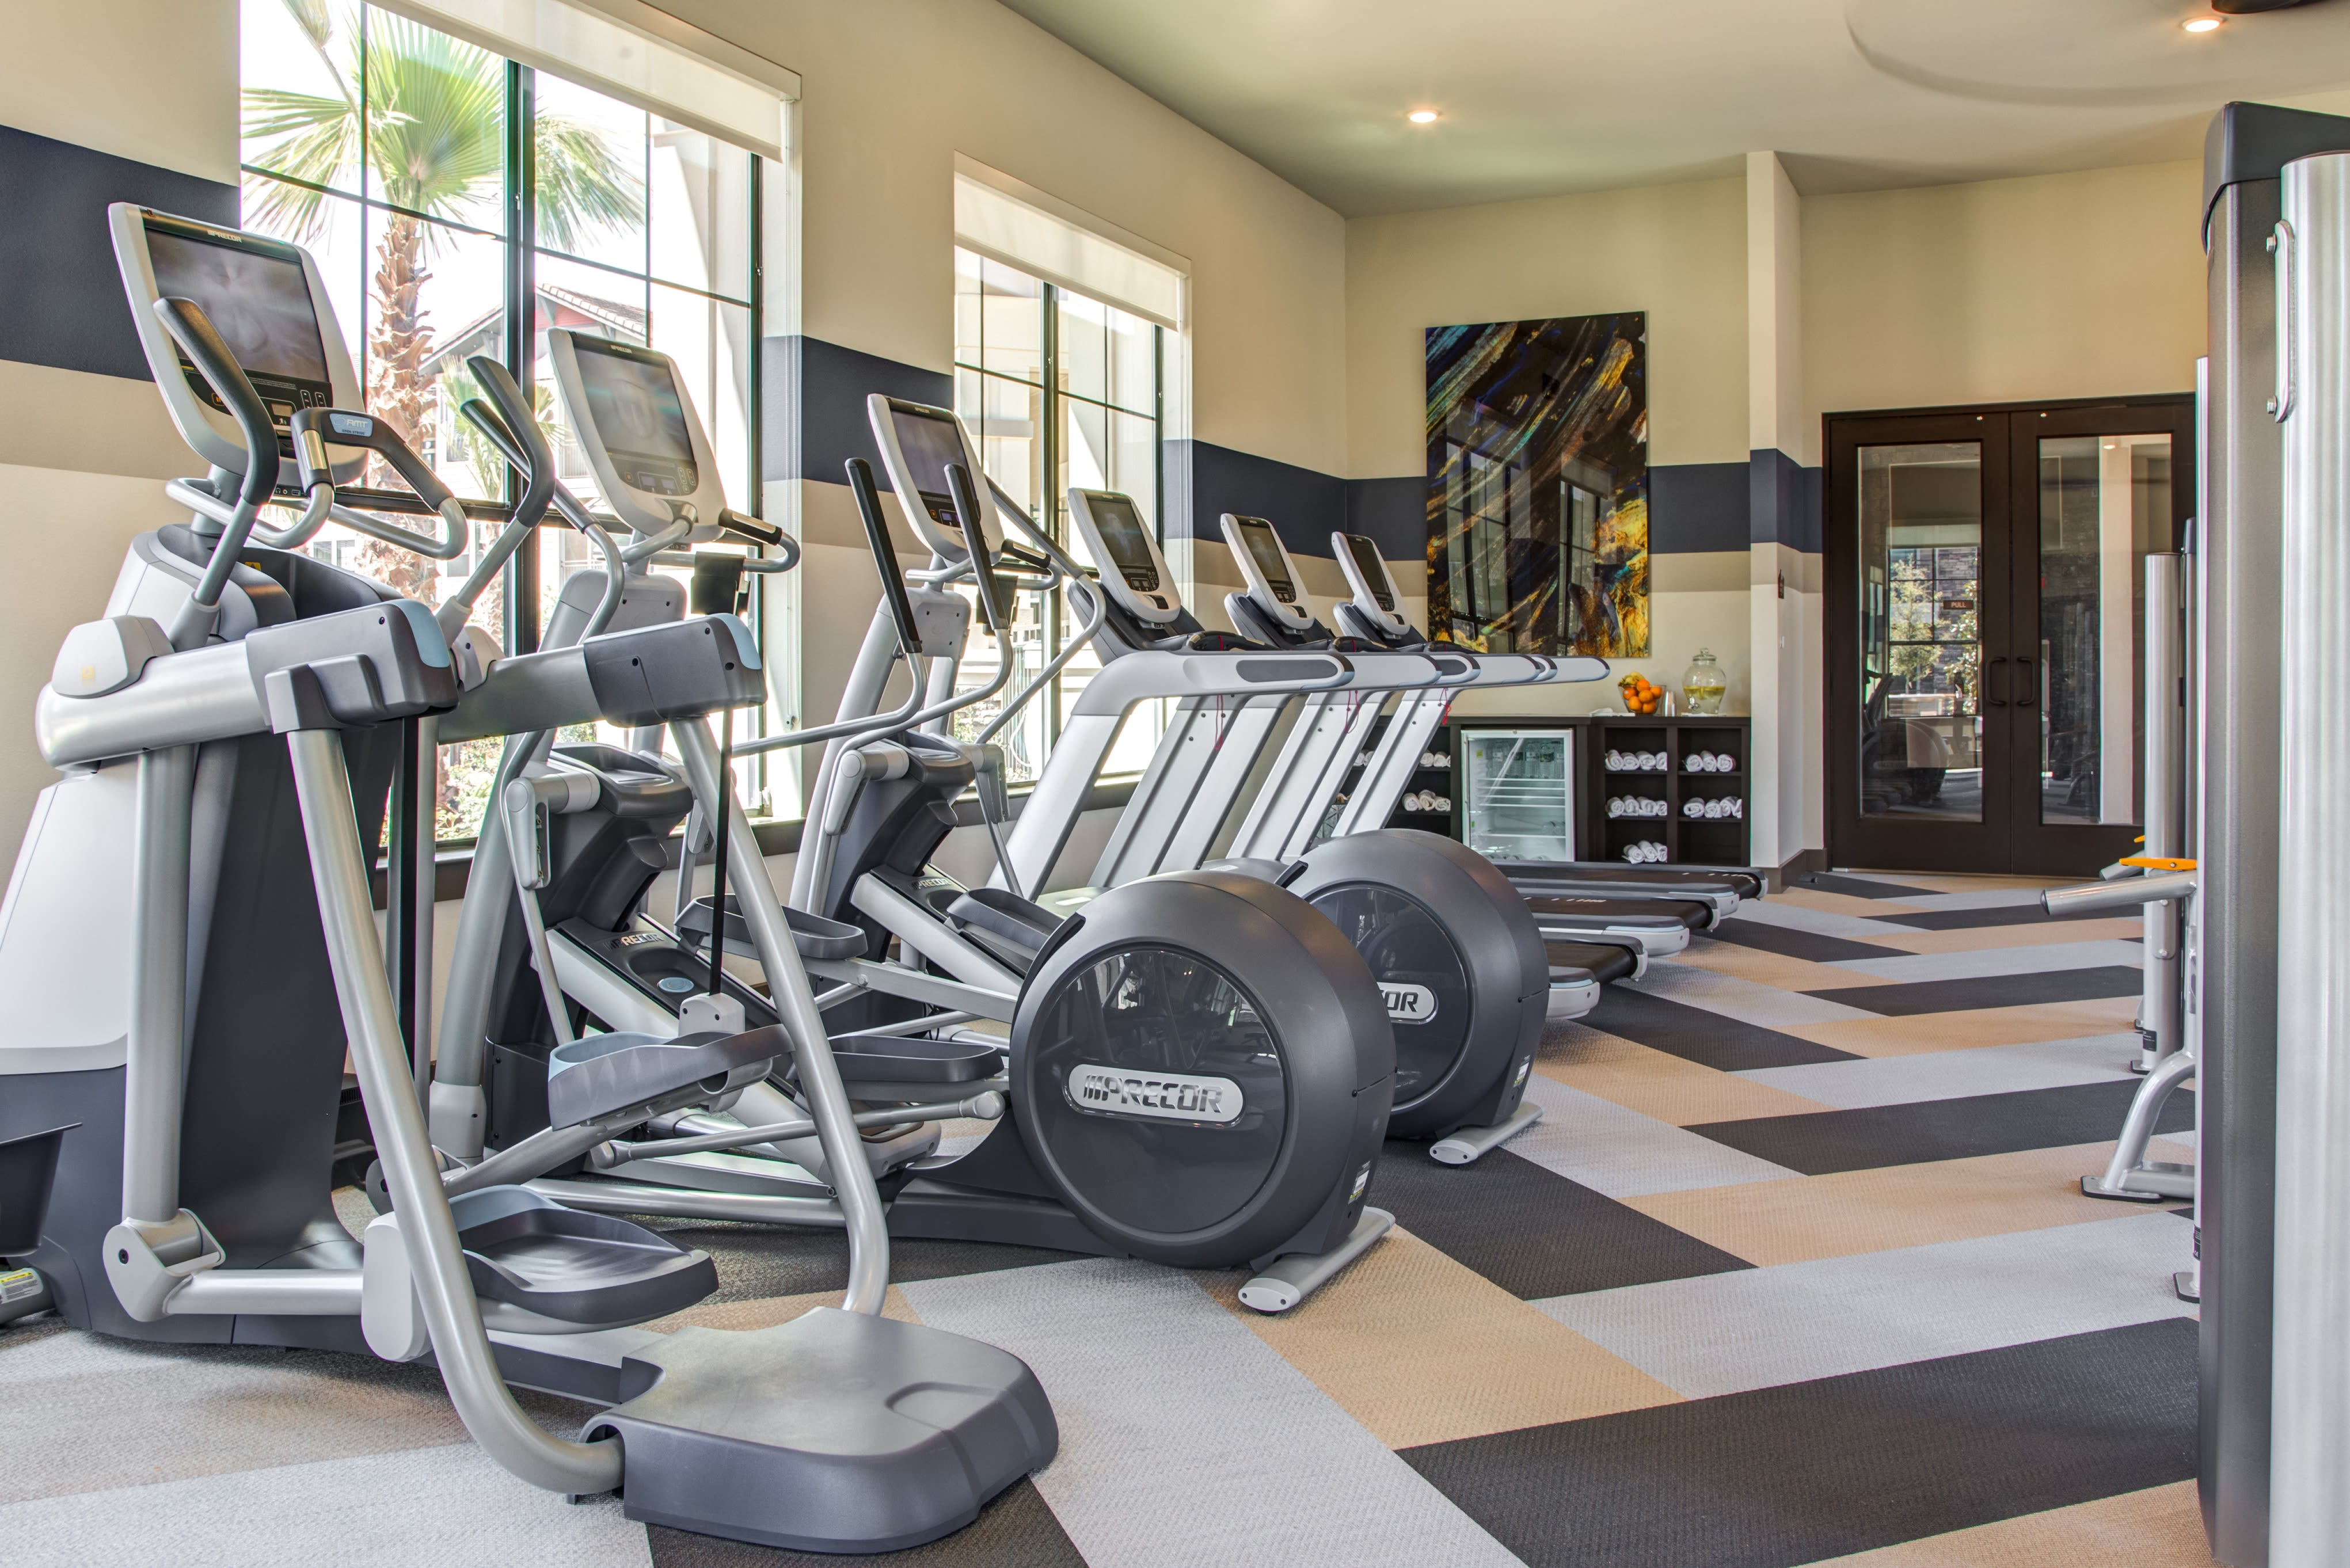 Well-equipped fitness center with terrific view of the community at Waterford Trails in Spring, Texas